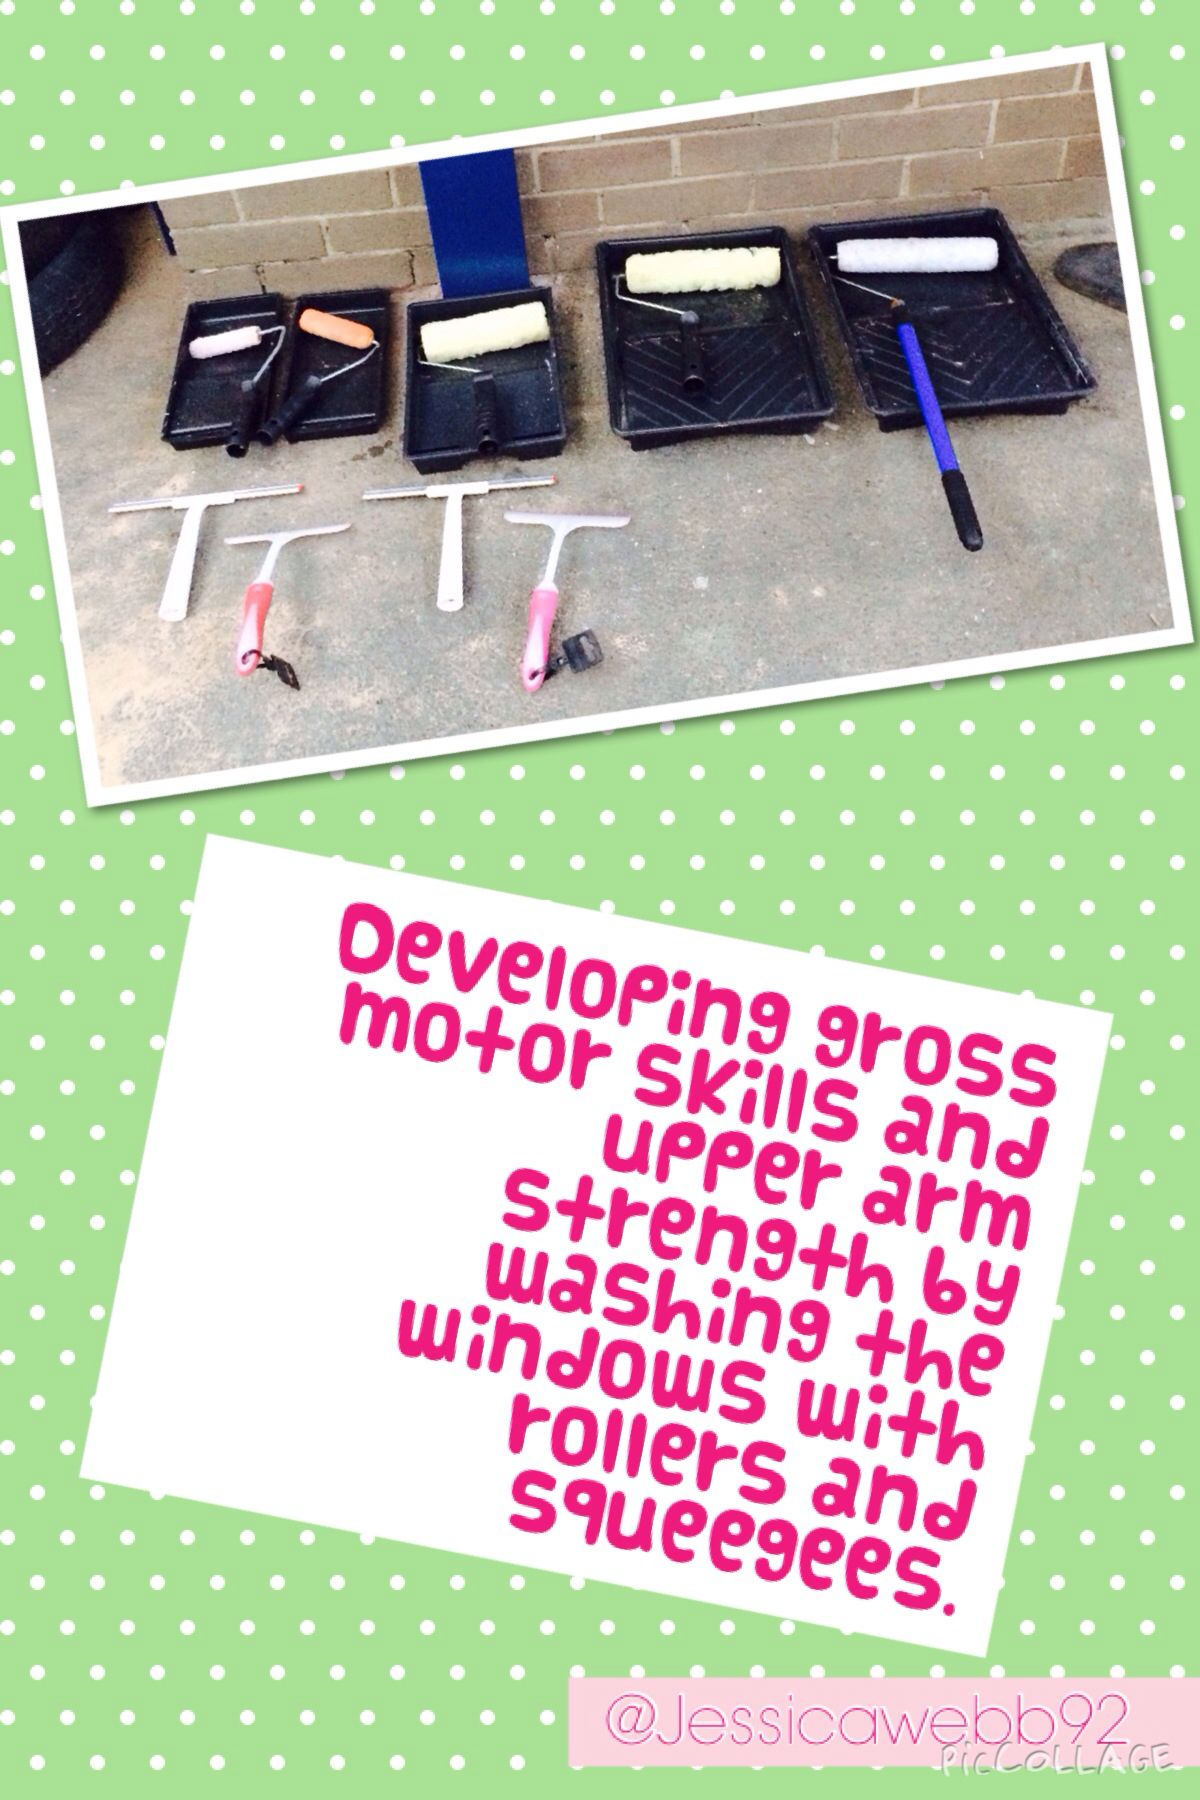 developing gross motor skills and upper arm strength by washing developing gross motor skills and upper arm strength by washing the windows rollers and squeegees